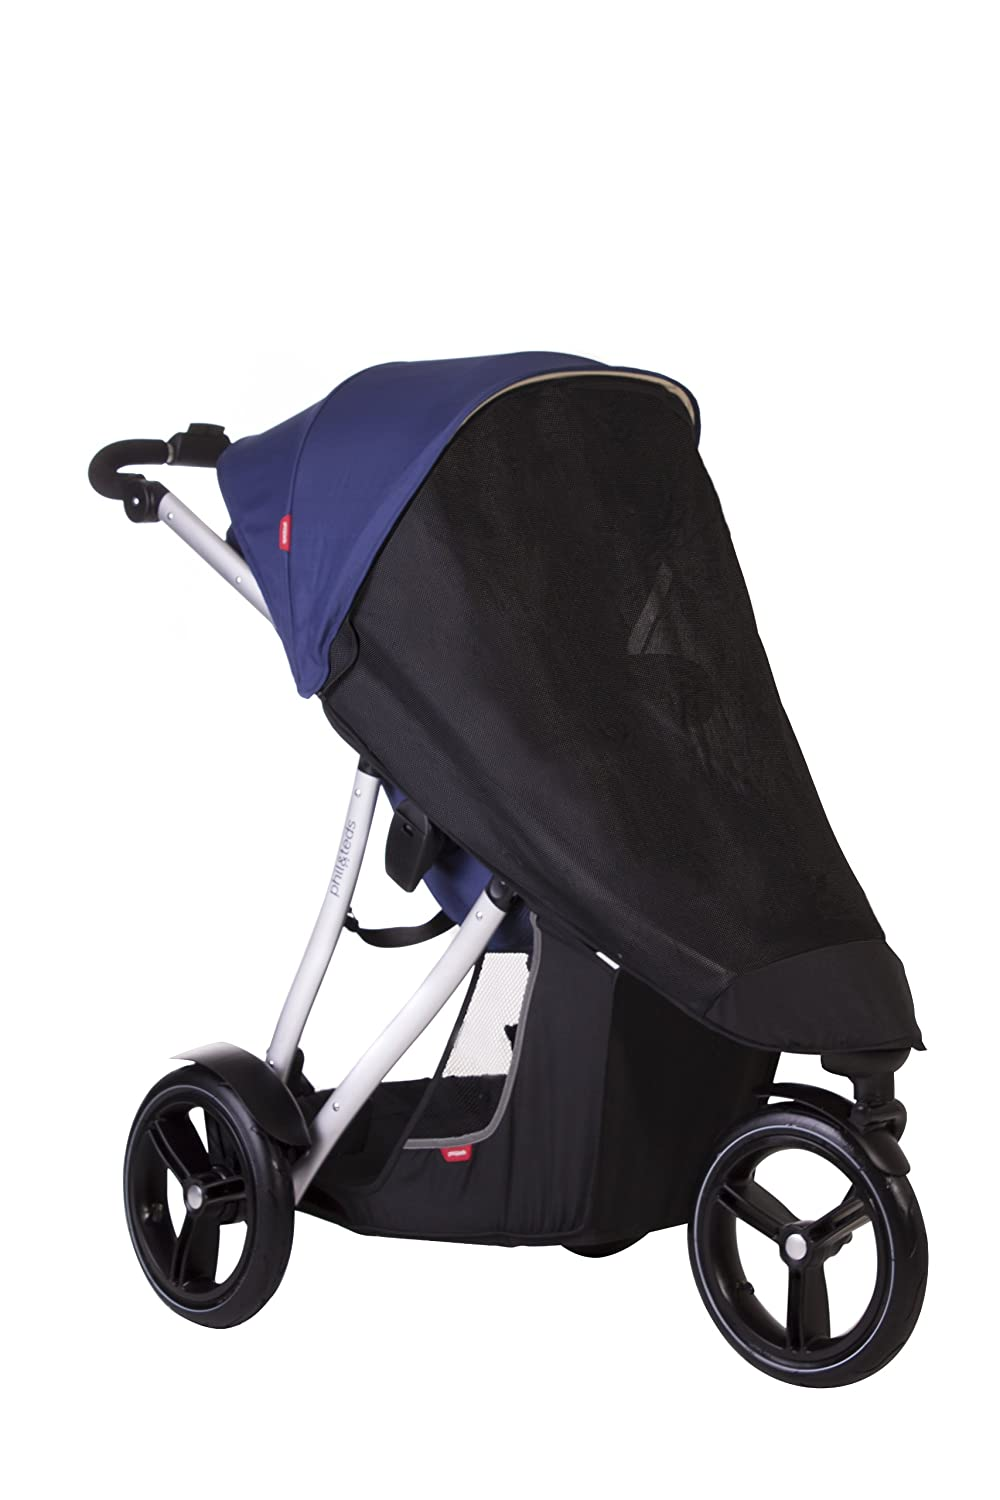 phil& teds UV Sunny Days Mesh Cover for Vibe and Verve Strollers, Double VERMD_V3_9999_200_USA